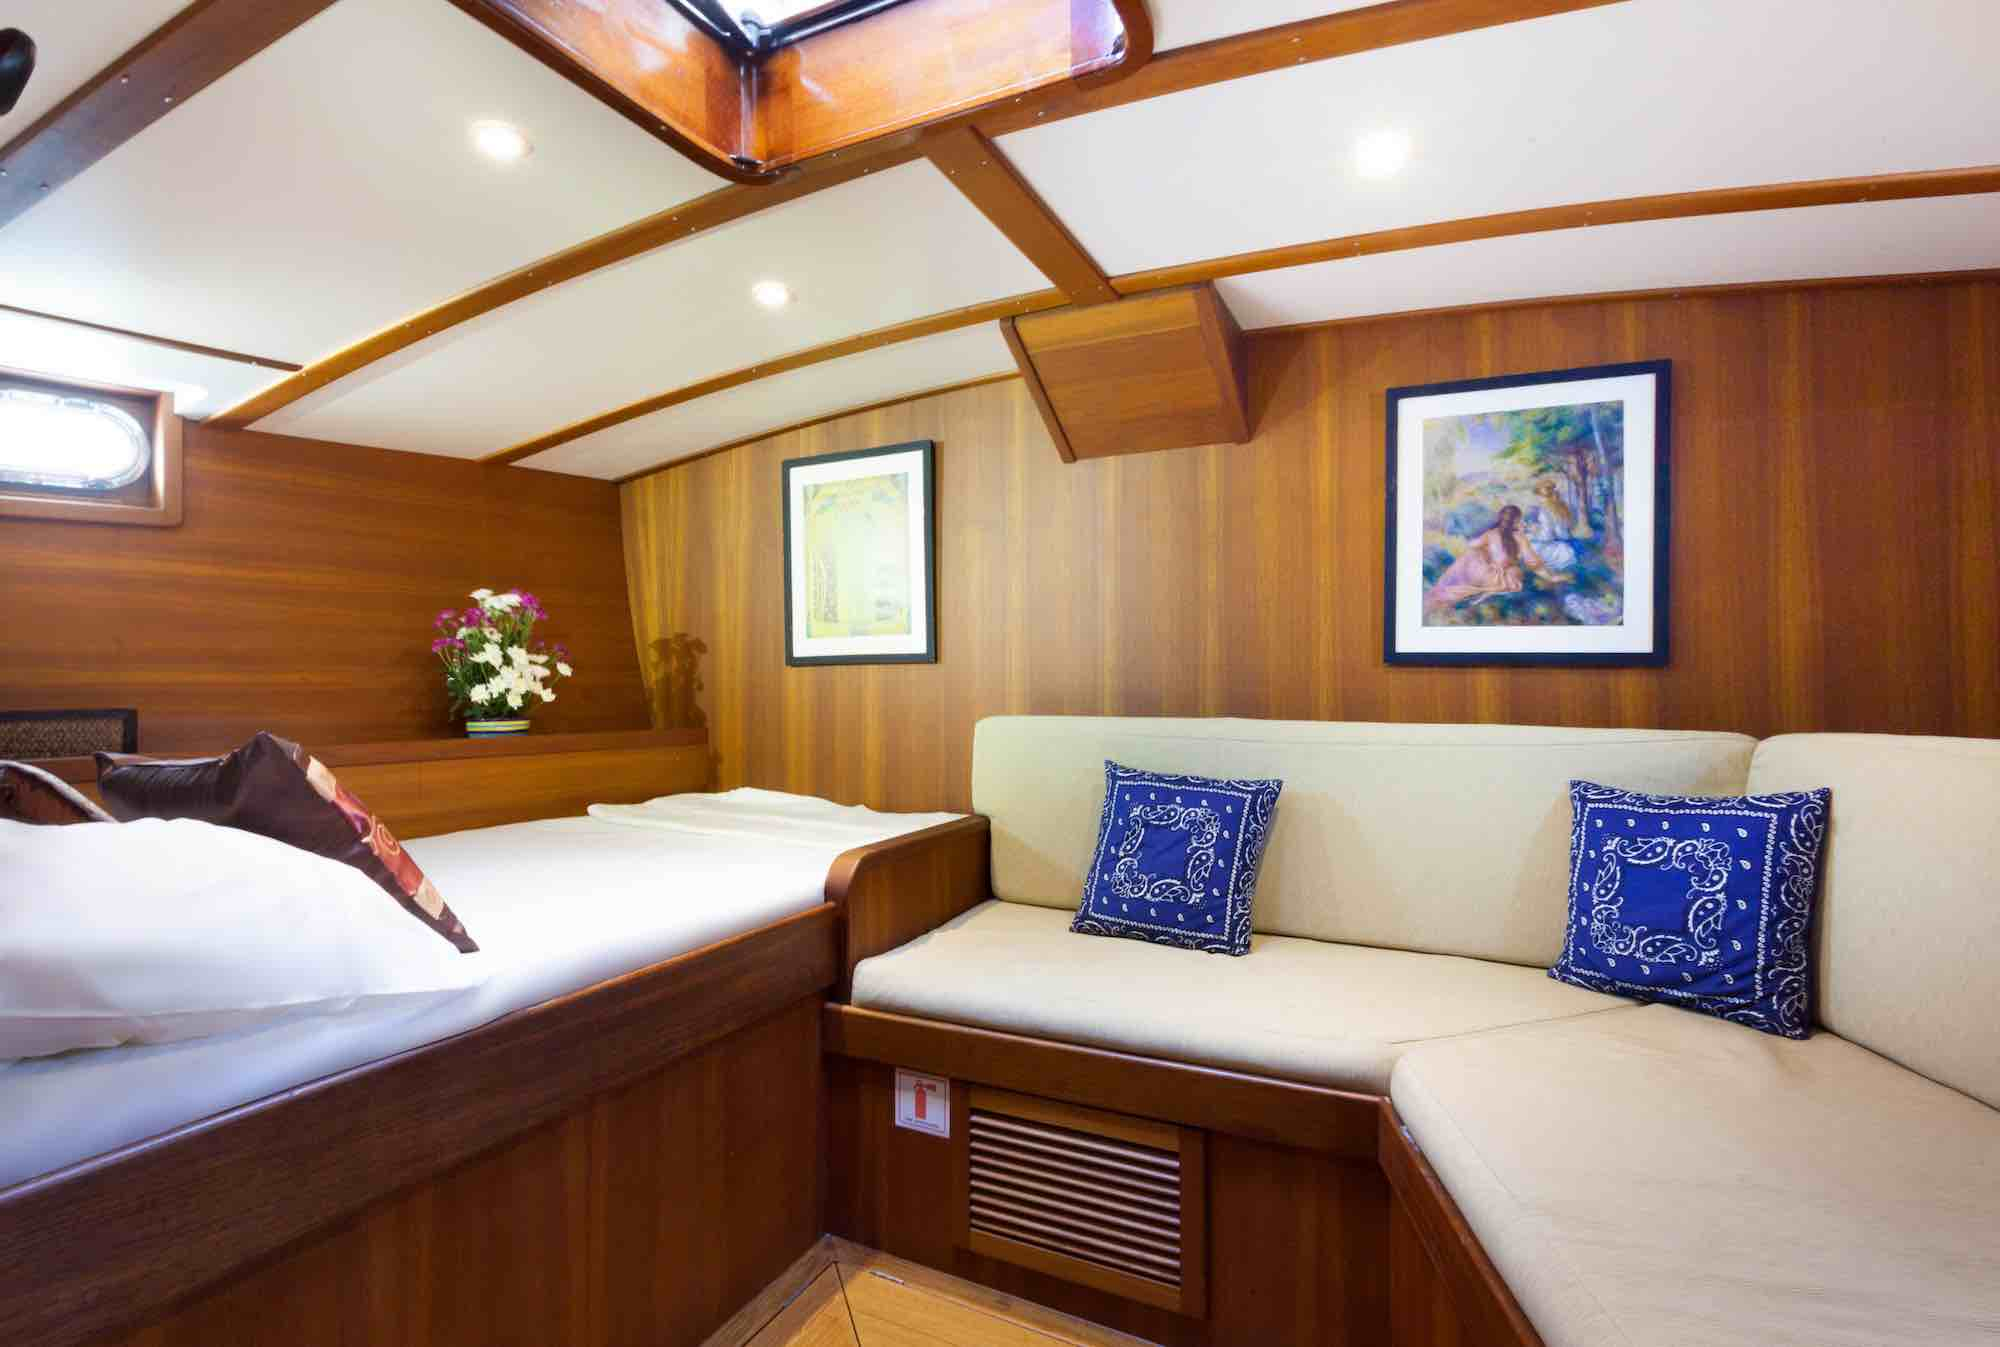 Jubilaeum_guest cabin-double bed-couch-nice throw pillows-sailing in Mergui_XS.jpeg